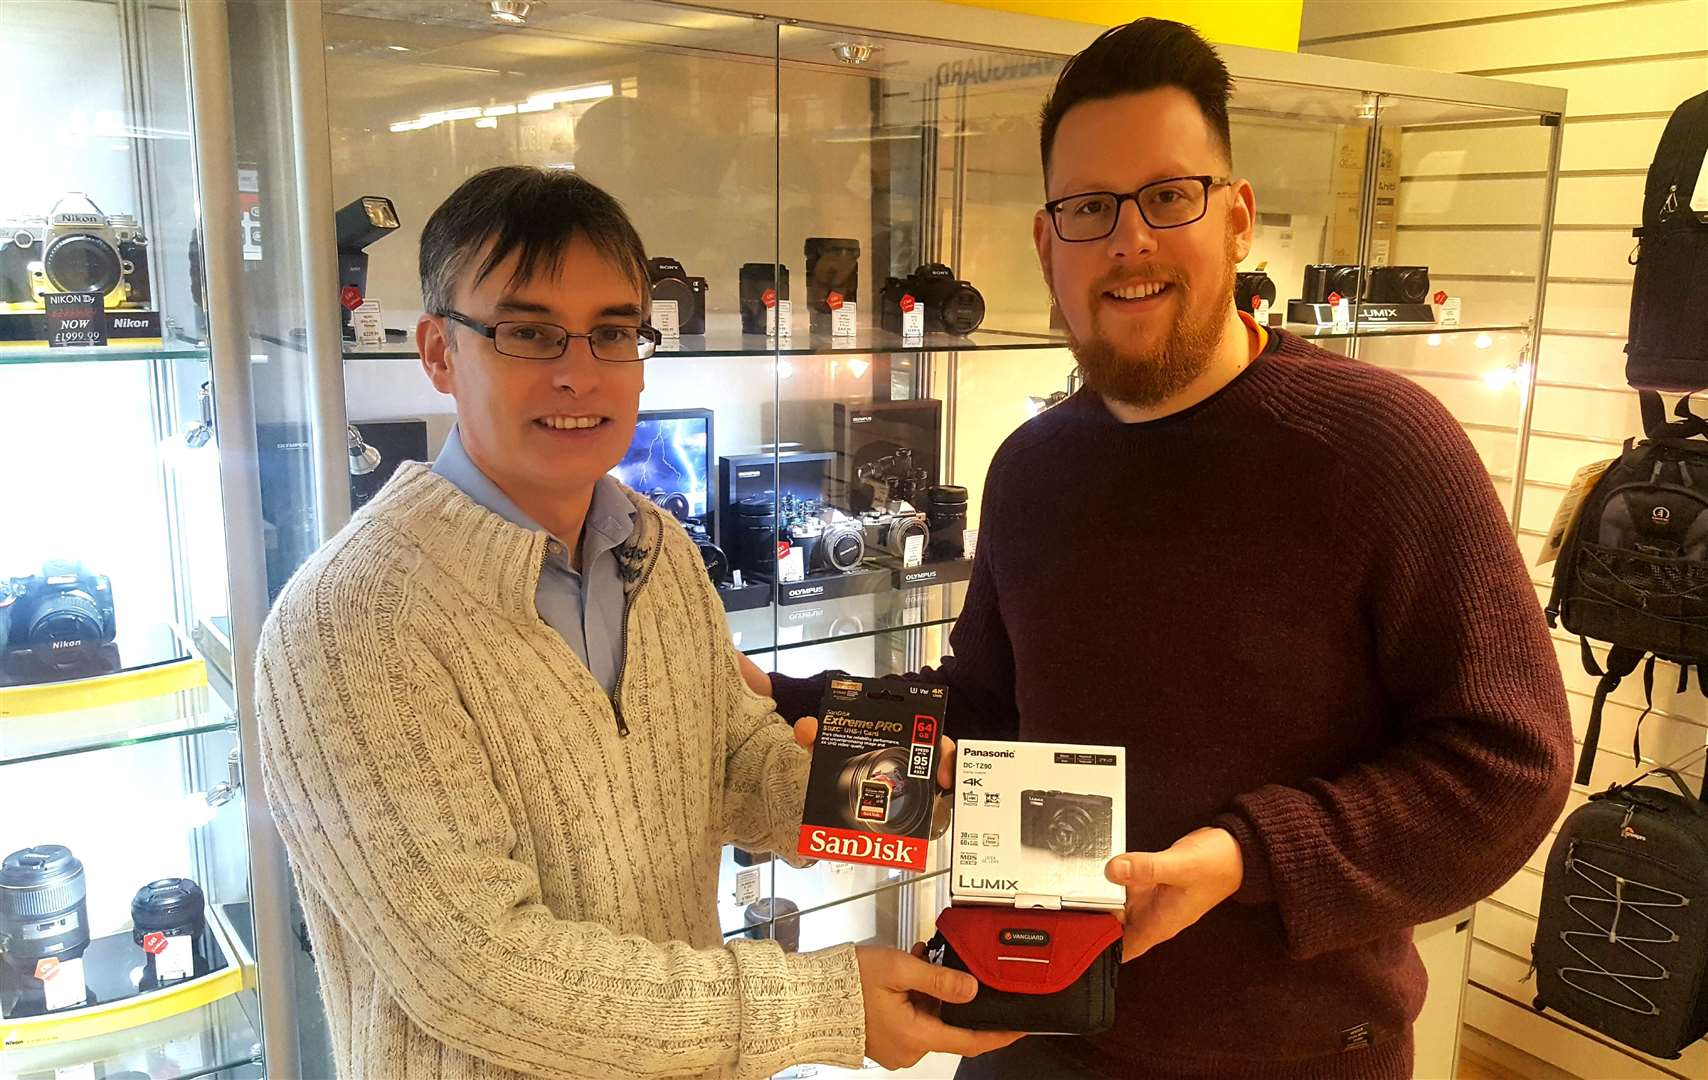 Yan Cowley (left) of the Canterbury Camera Centre presents the prize Panasonic Lumix to winner Daniel Russell